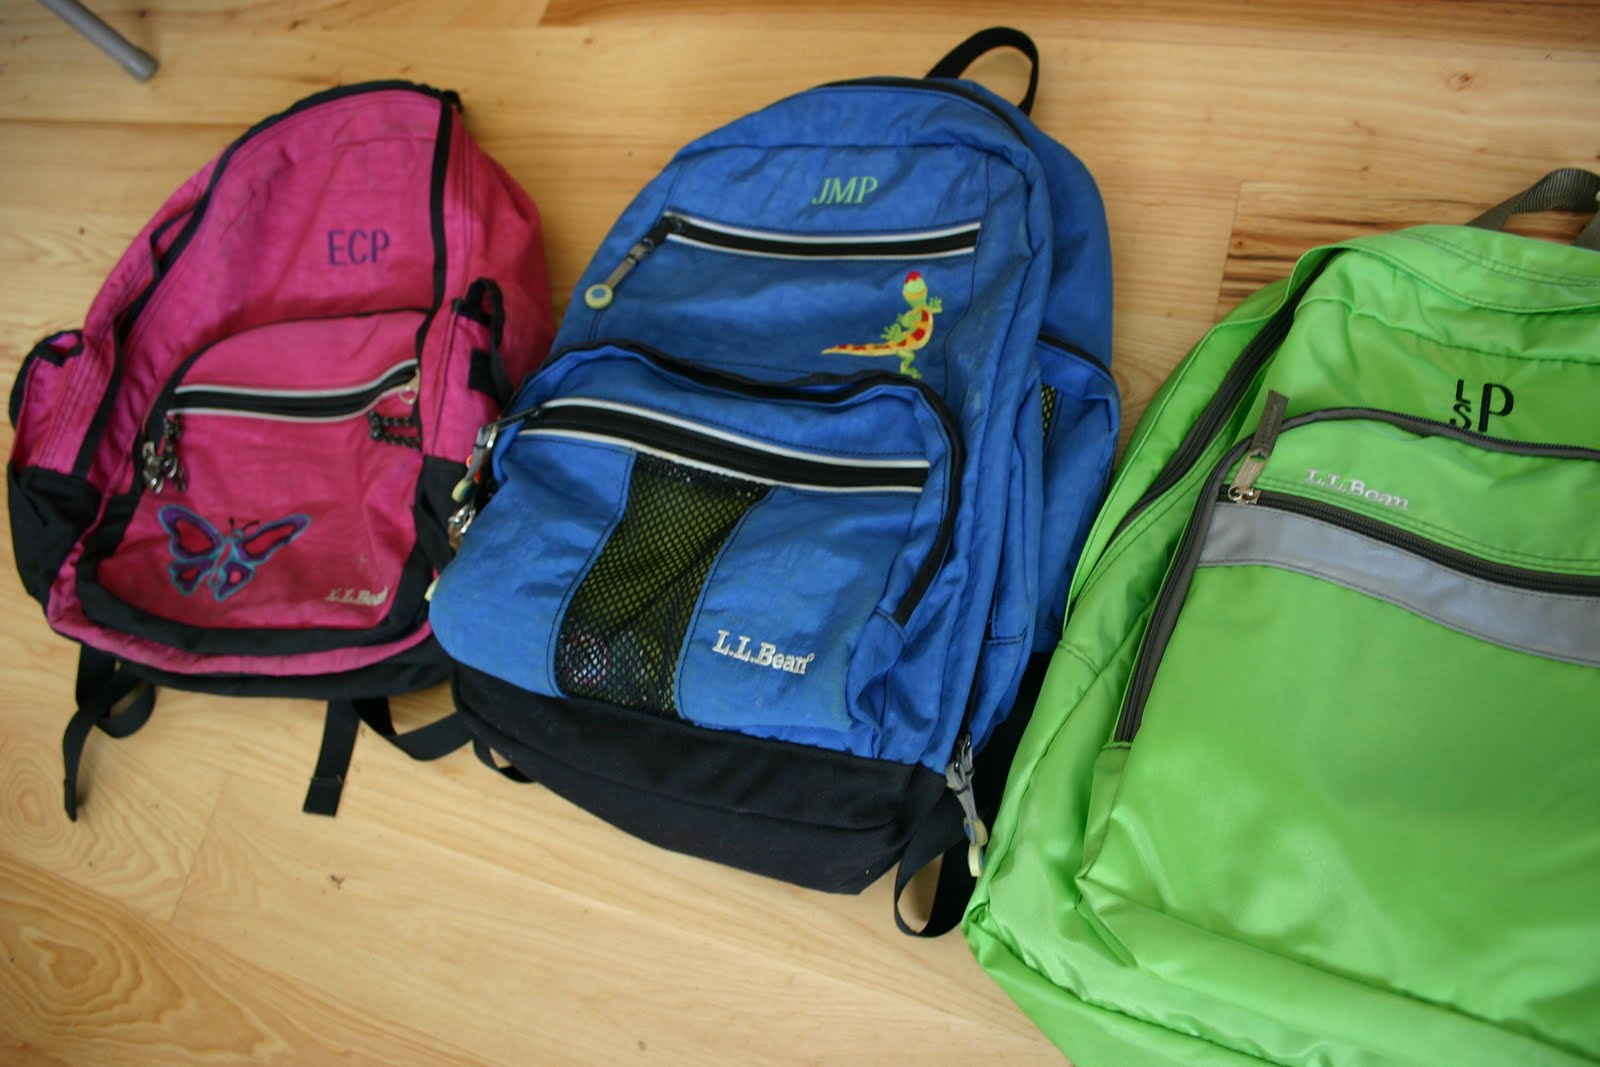 LL Bean Backpacks At Our House We Have A Little Tradition With You Get ONE When Enter Kindergarten And It Has To Last Through 6th Grade